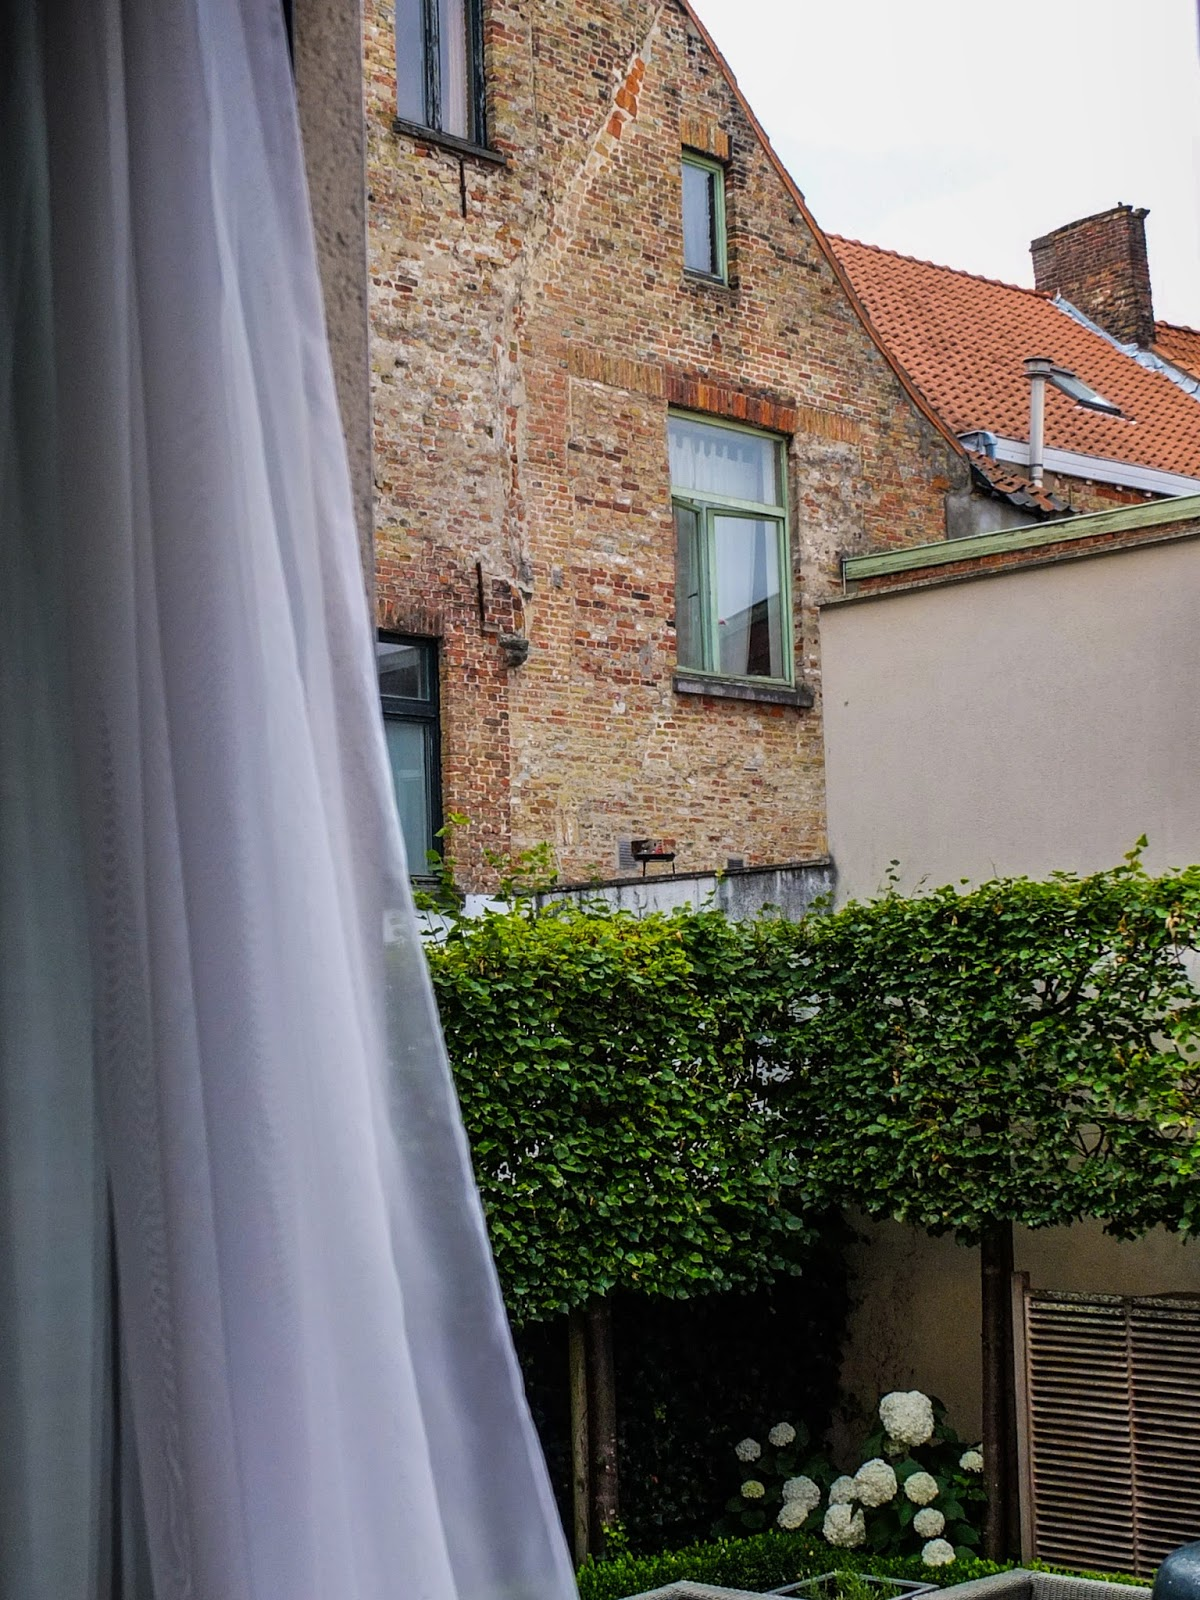 Window view overlooking a red brick wall of a house in Bruges with a curtain net in the foreground.